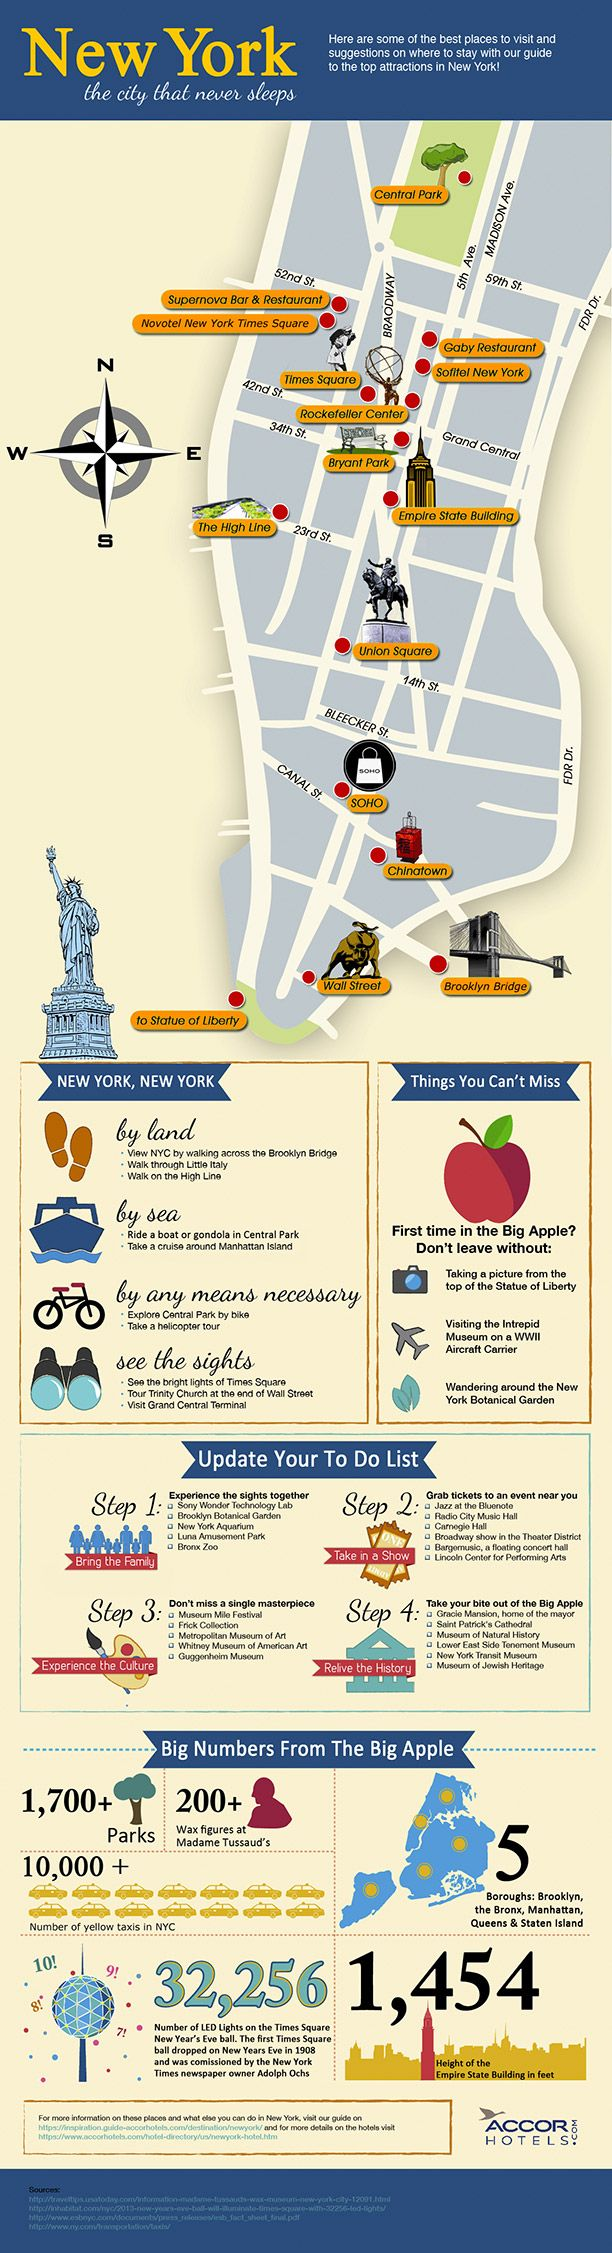 things to do and see in New York City #Infographics @Accorhotels.com.com